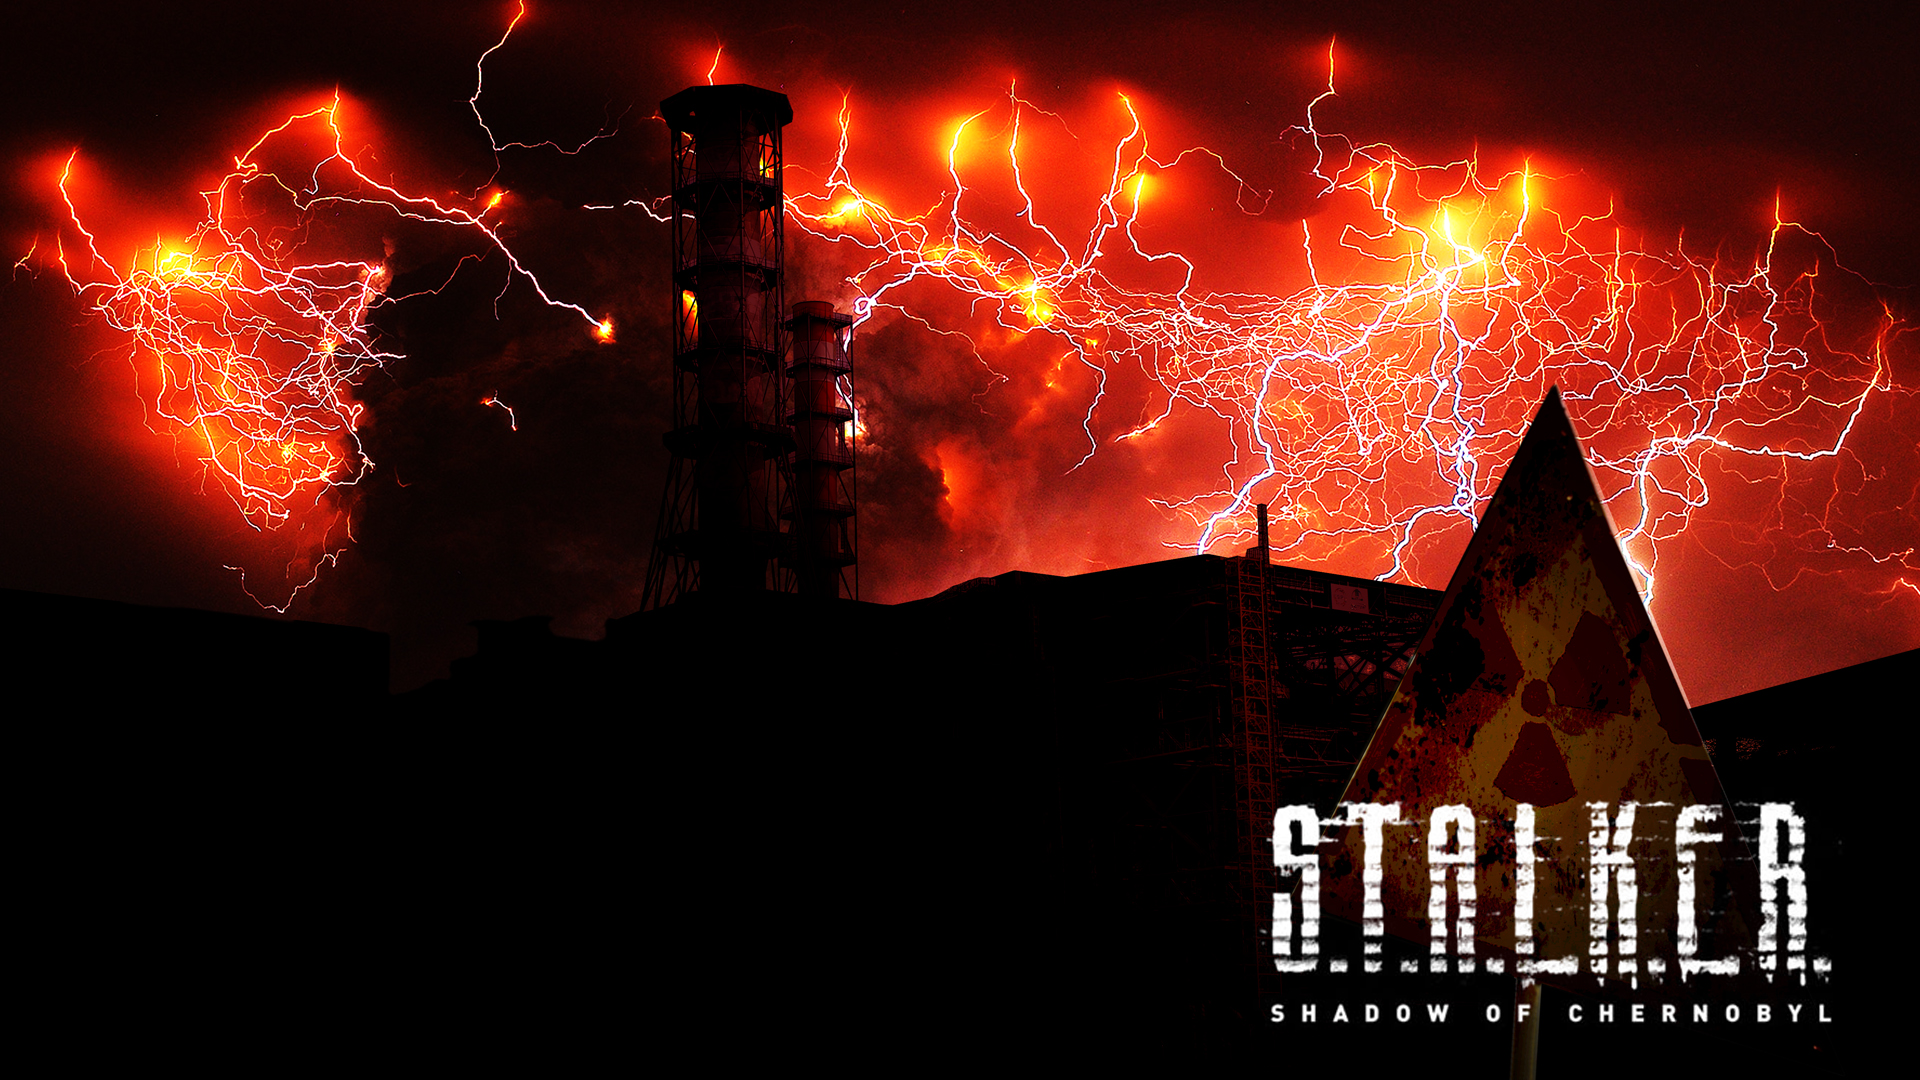 STALKER: Shadow of Chernobyl Patch 1.0005 Digital Distribution. . Your dow